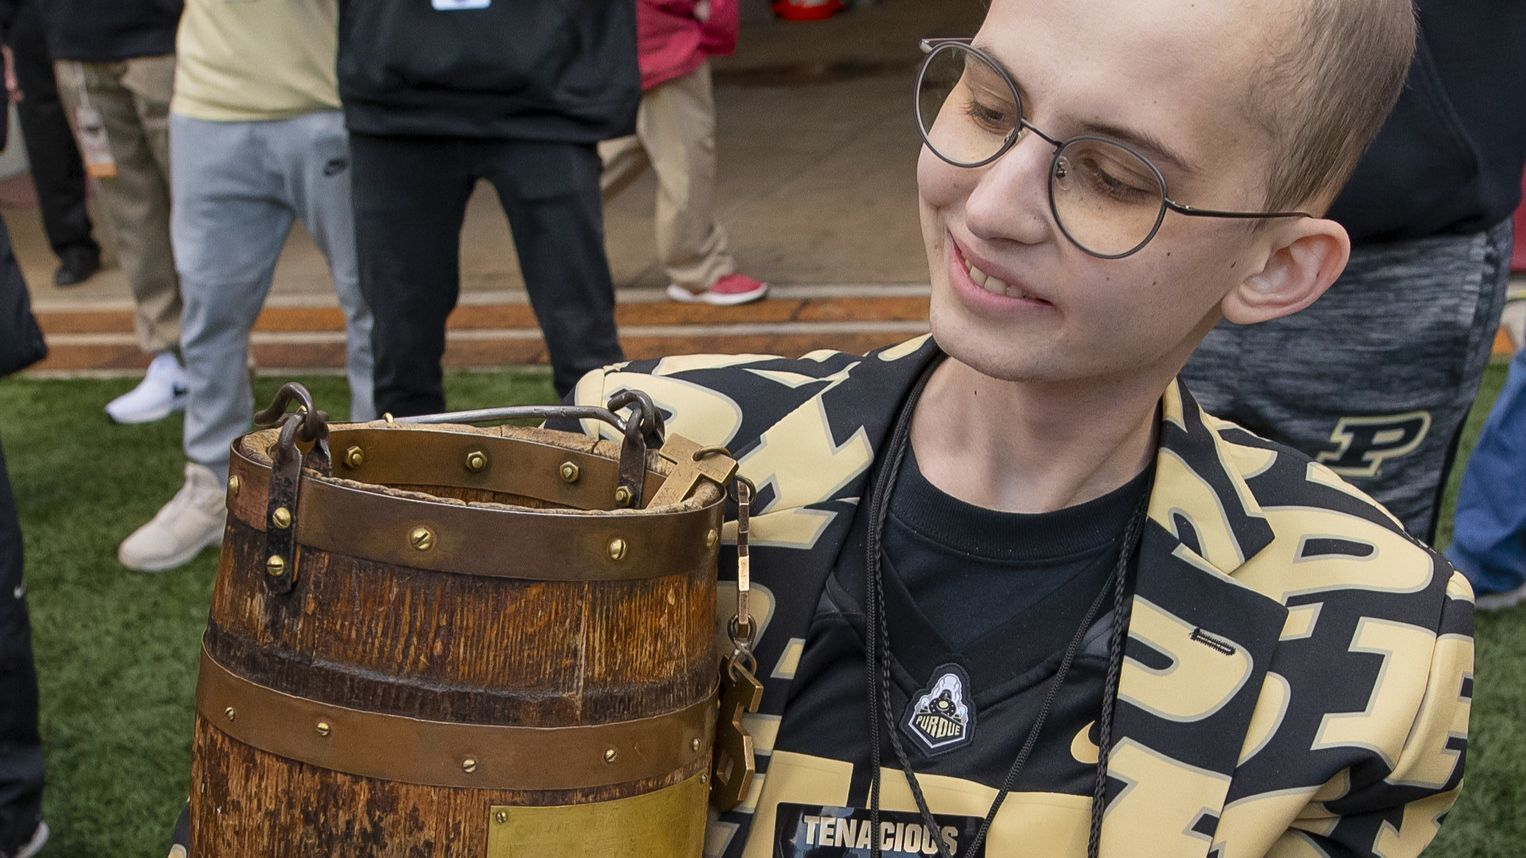 Cells from Tyler Trent, the Purdue fan who inspired many with his fight against cancer, will be used for research